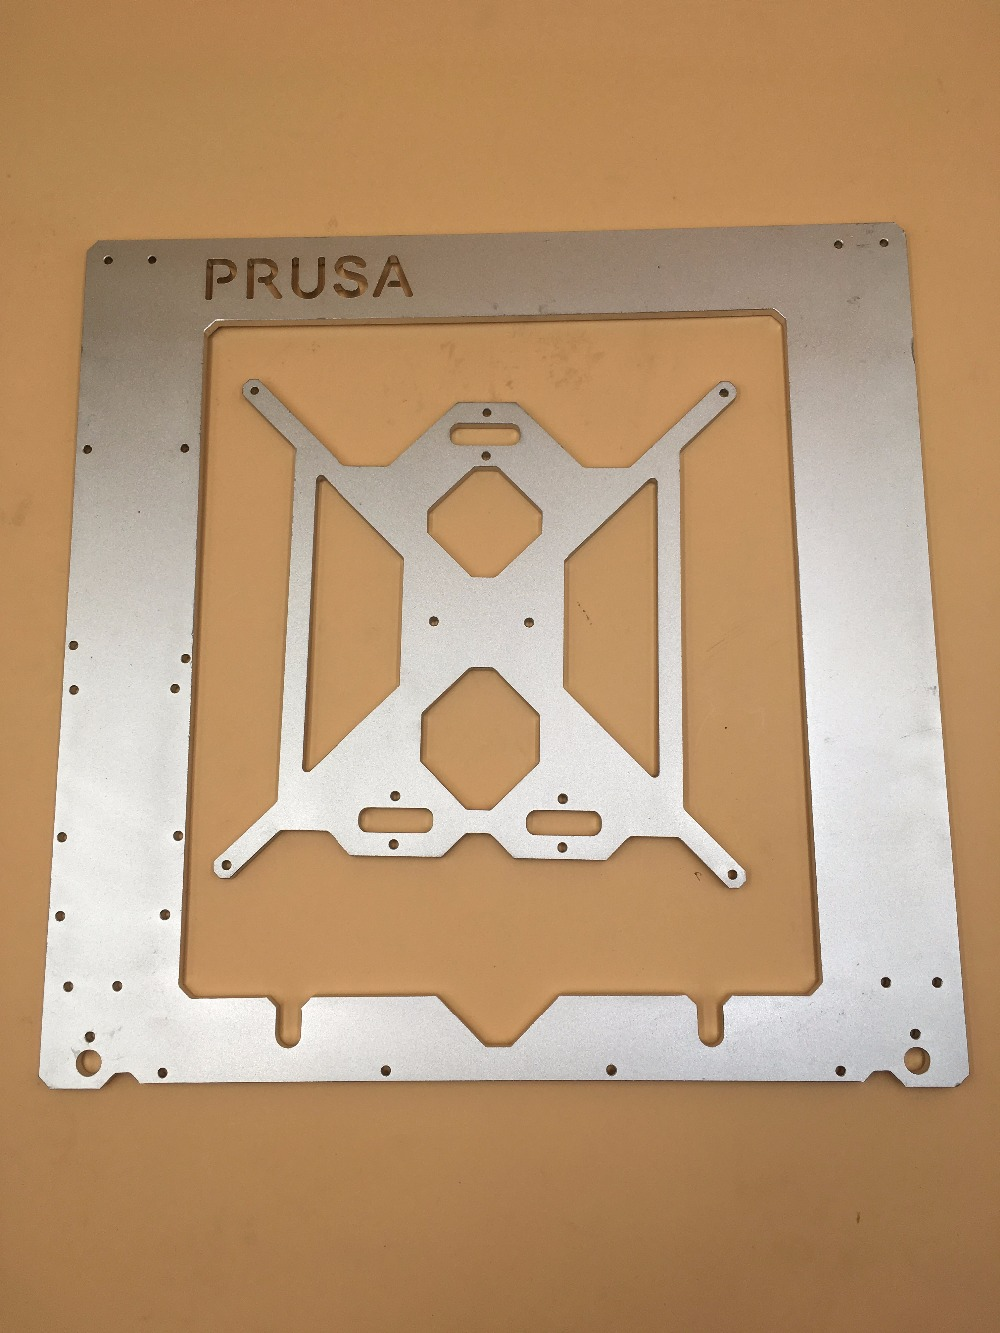 Clashed bent RepRap Prusa i3 frame kit Rework 3D printer aluminum alloy made upgraded 3D Printer DIY 6 mm Anodized oxidation